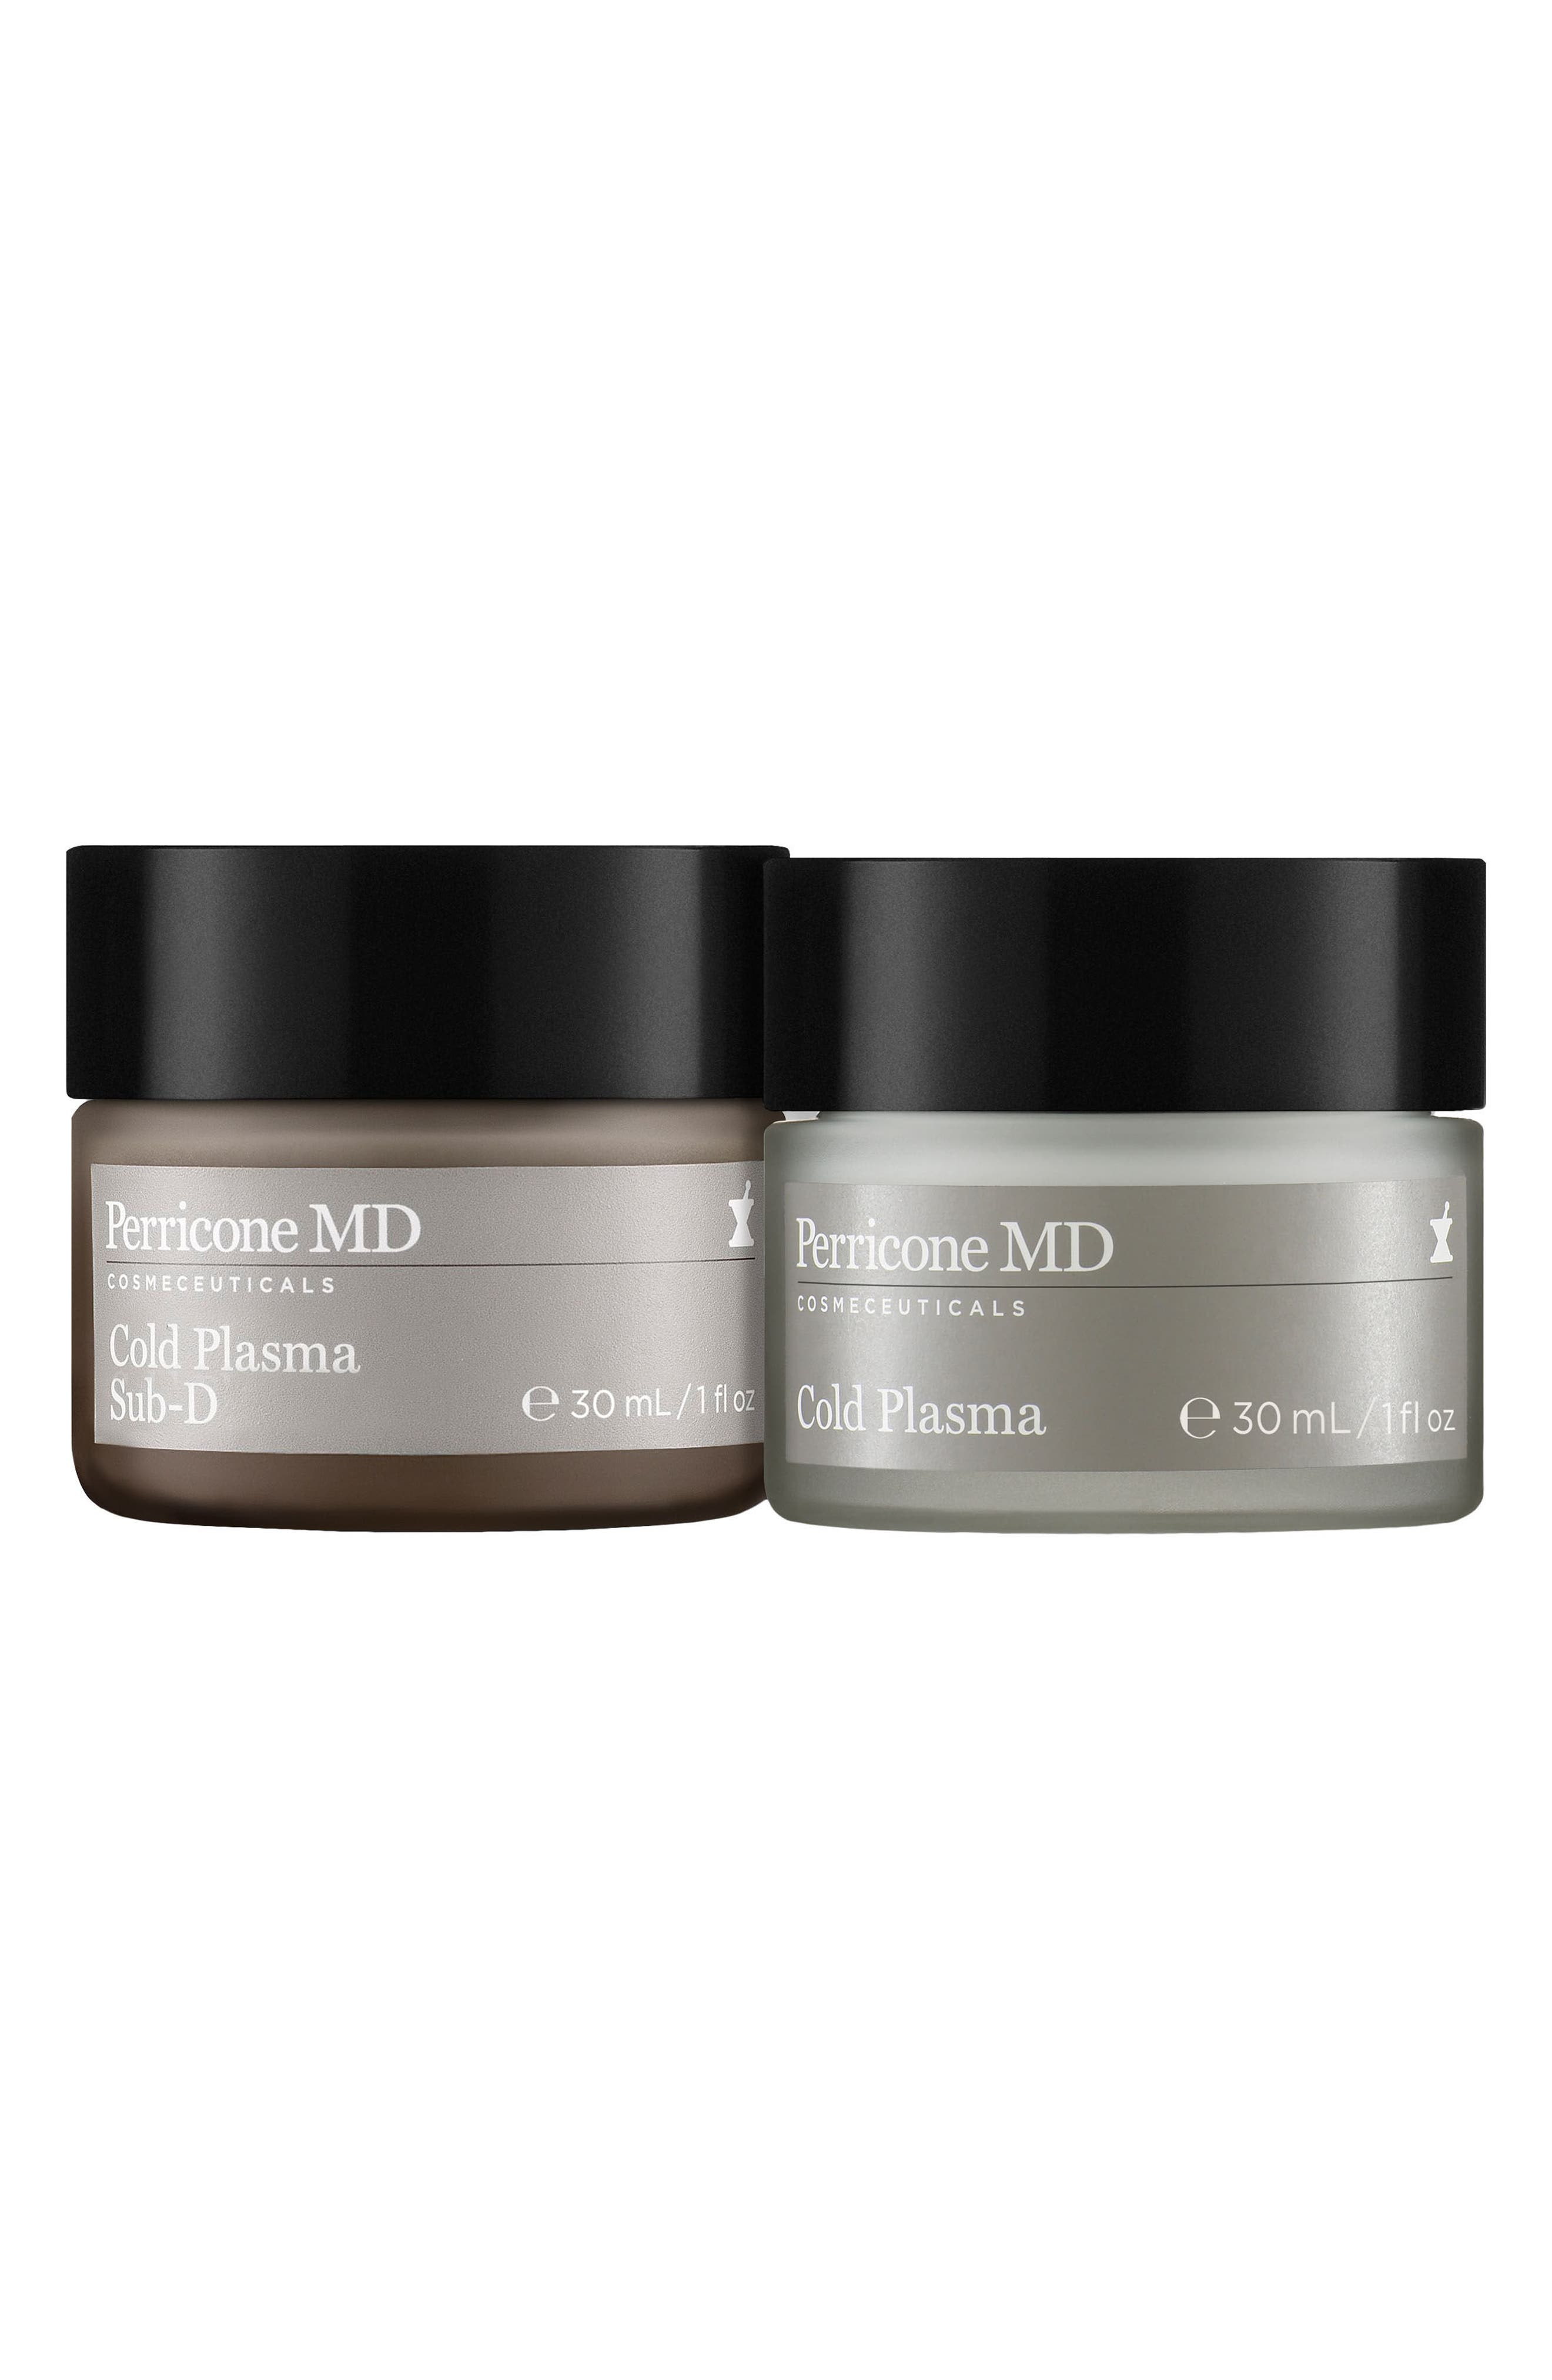 Perricone MD Cold Plasma Platinum Collection ($222.50 Value)